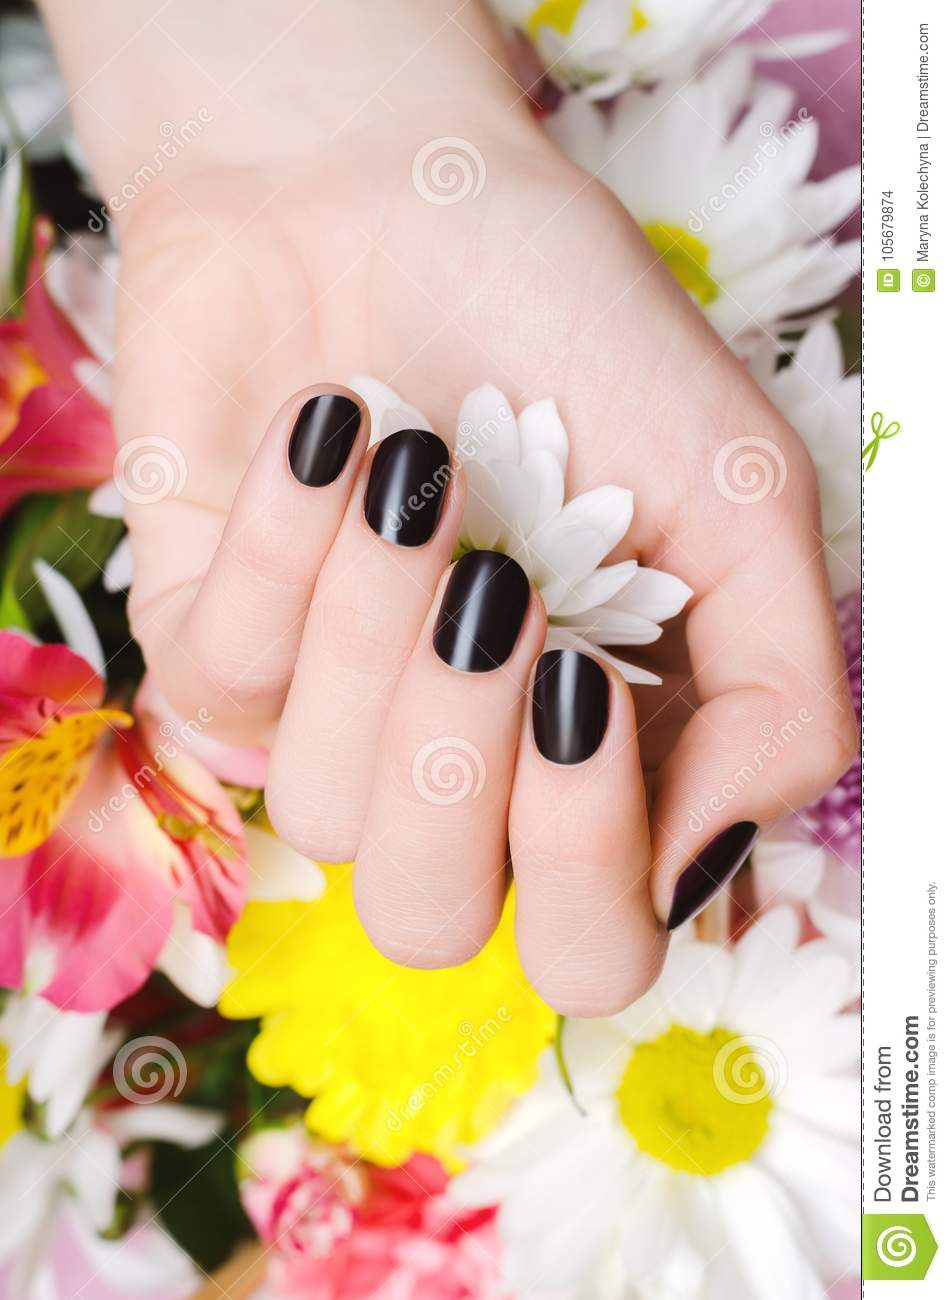 Female Hands With Dark Red Nail Design. Stock Photo - Image of leave ...